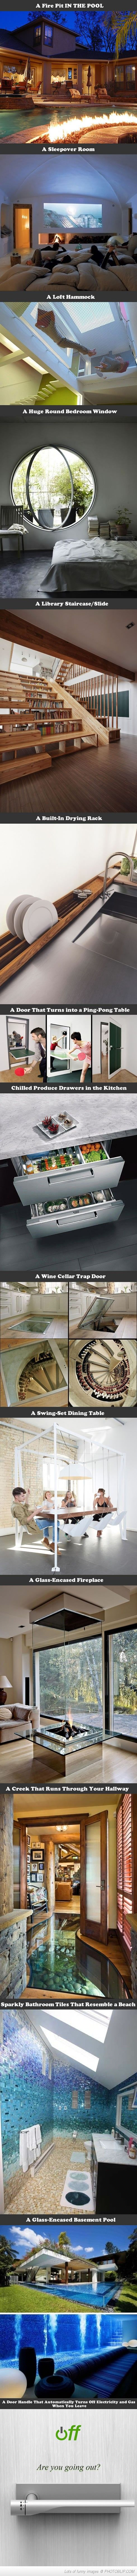 15 Things You Obviously Need In Your New Home! Some of these are pretty cool!!